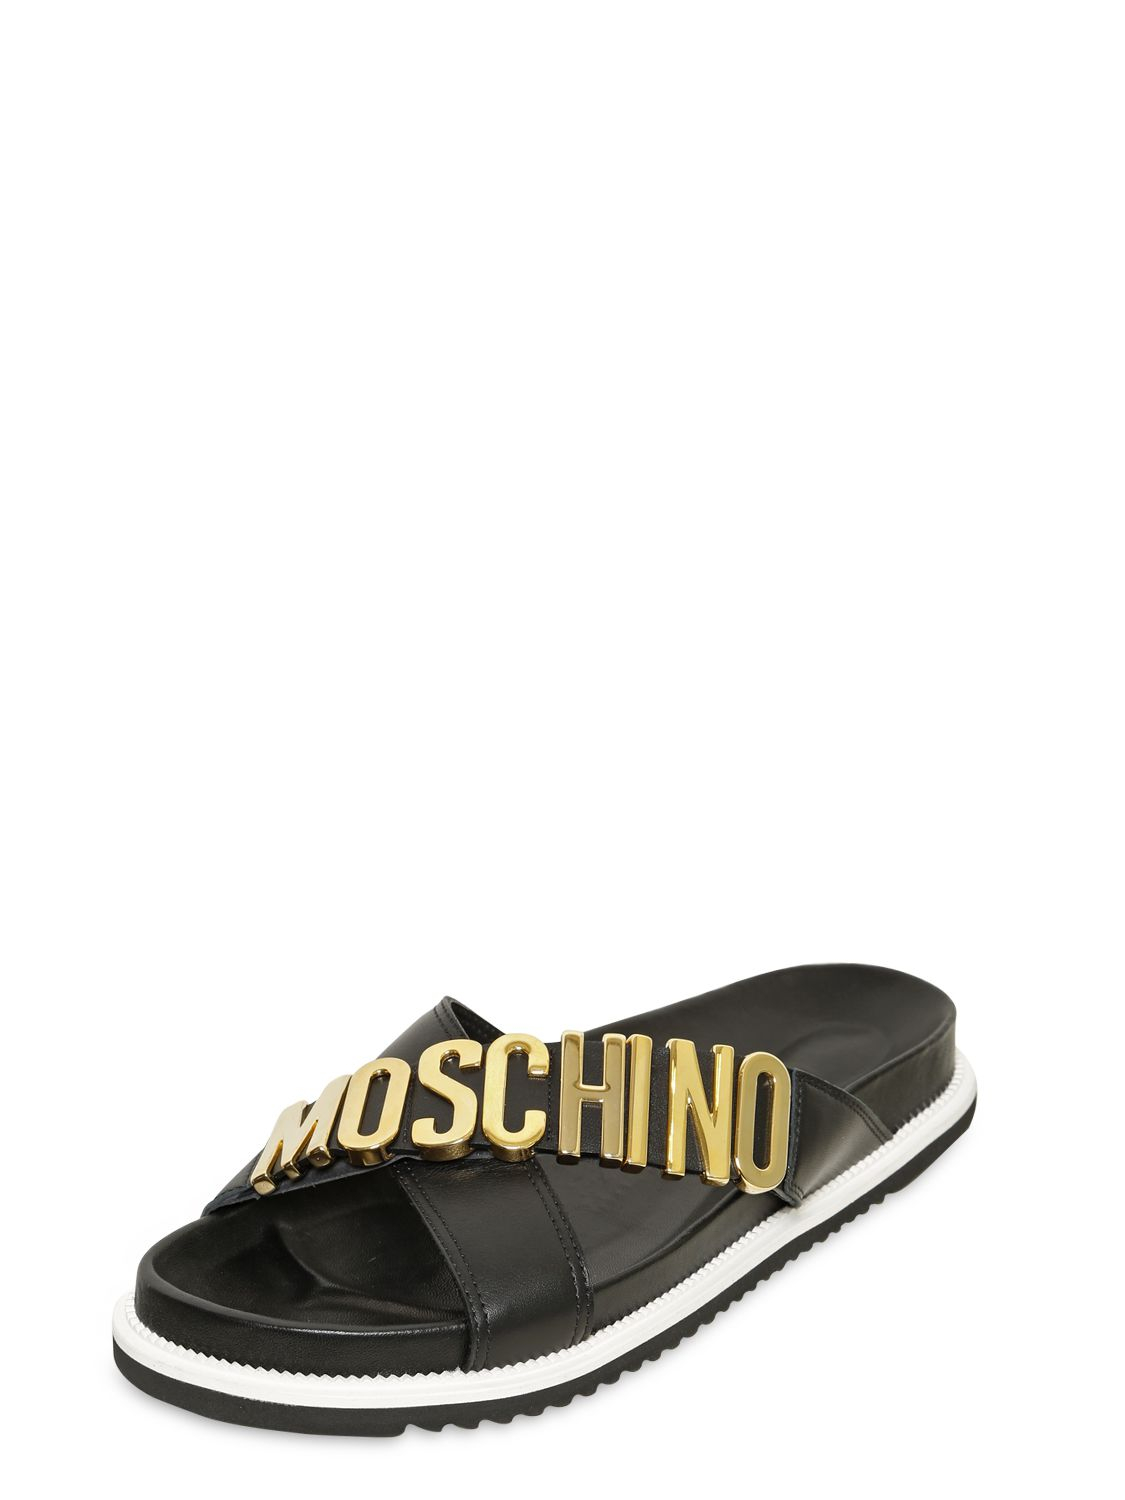 Moschino Logo slides 7gI2CUT4W